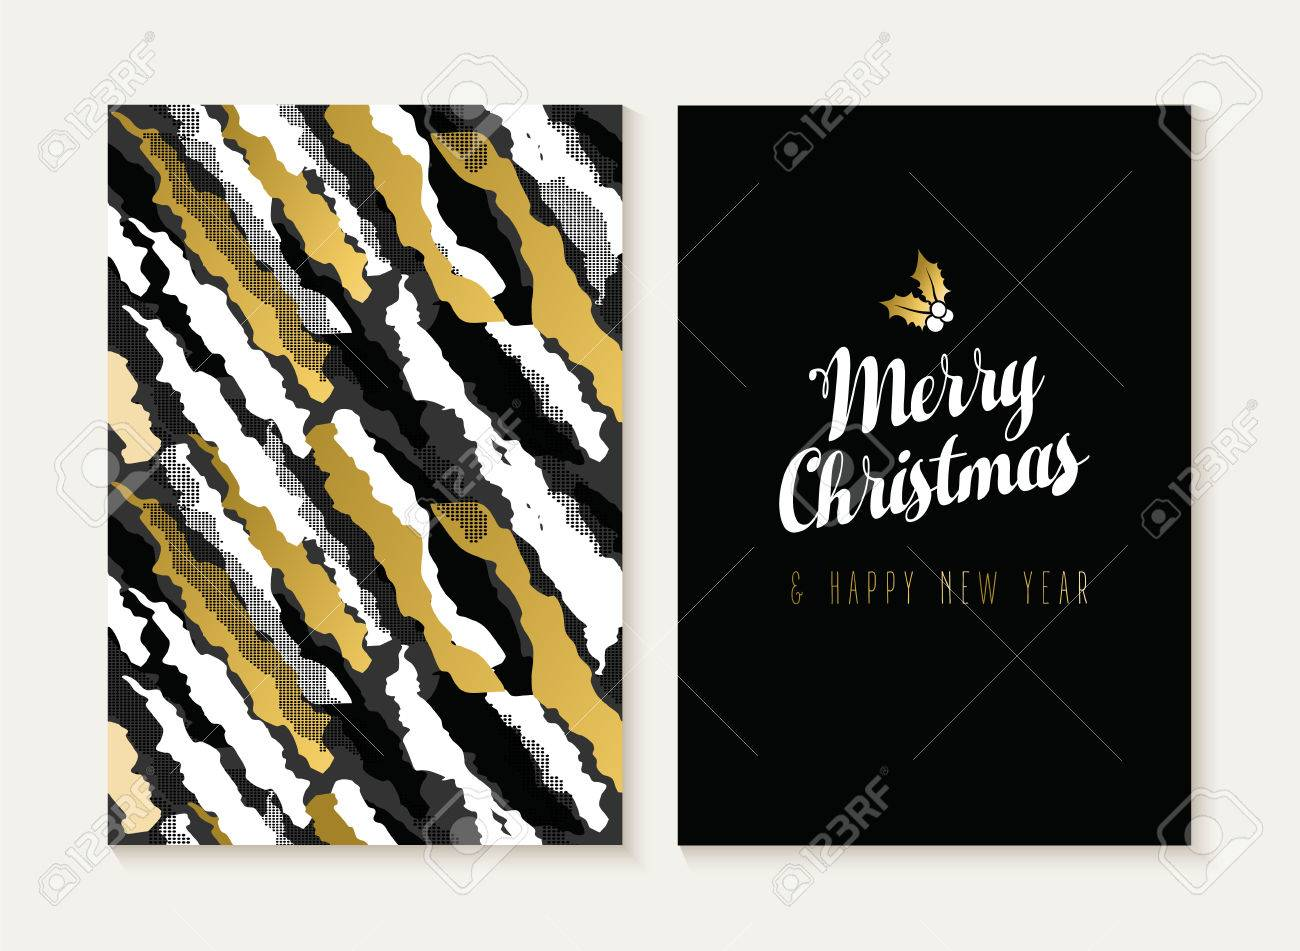 merry christmas and happy new year card template set with retro 80s style seamless pattern and